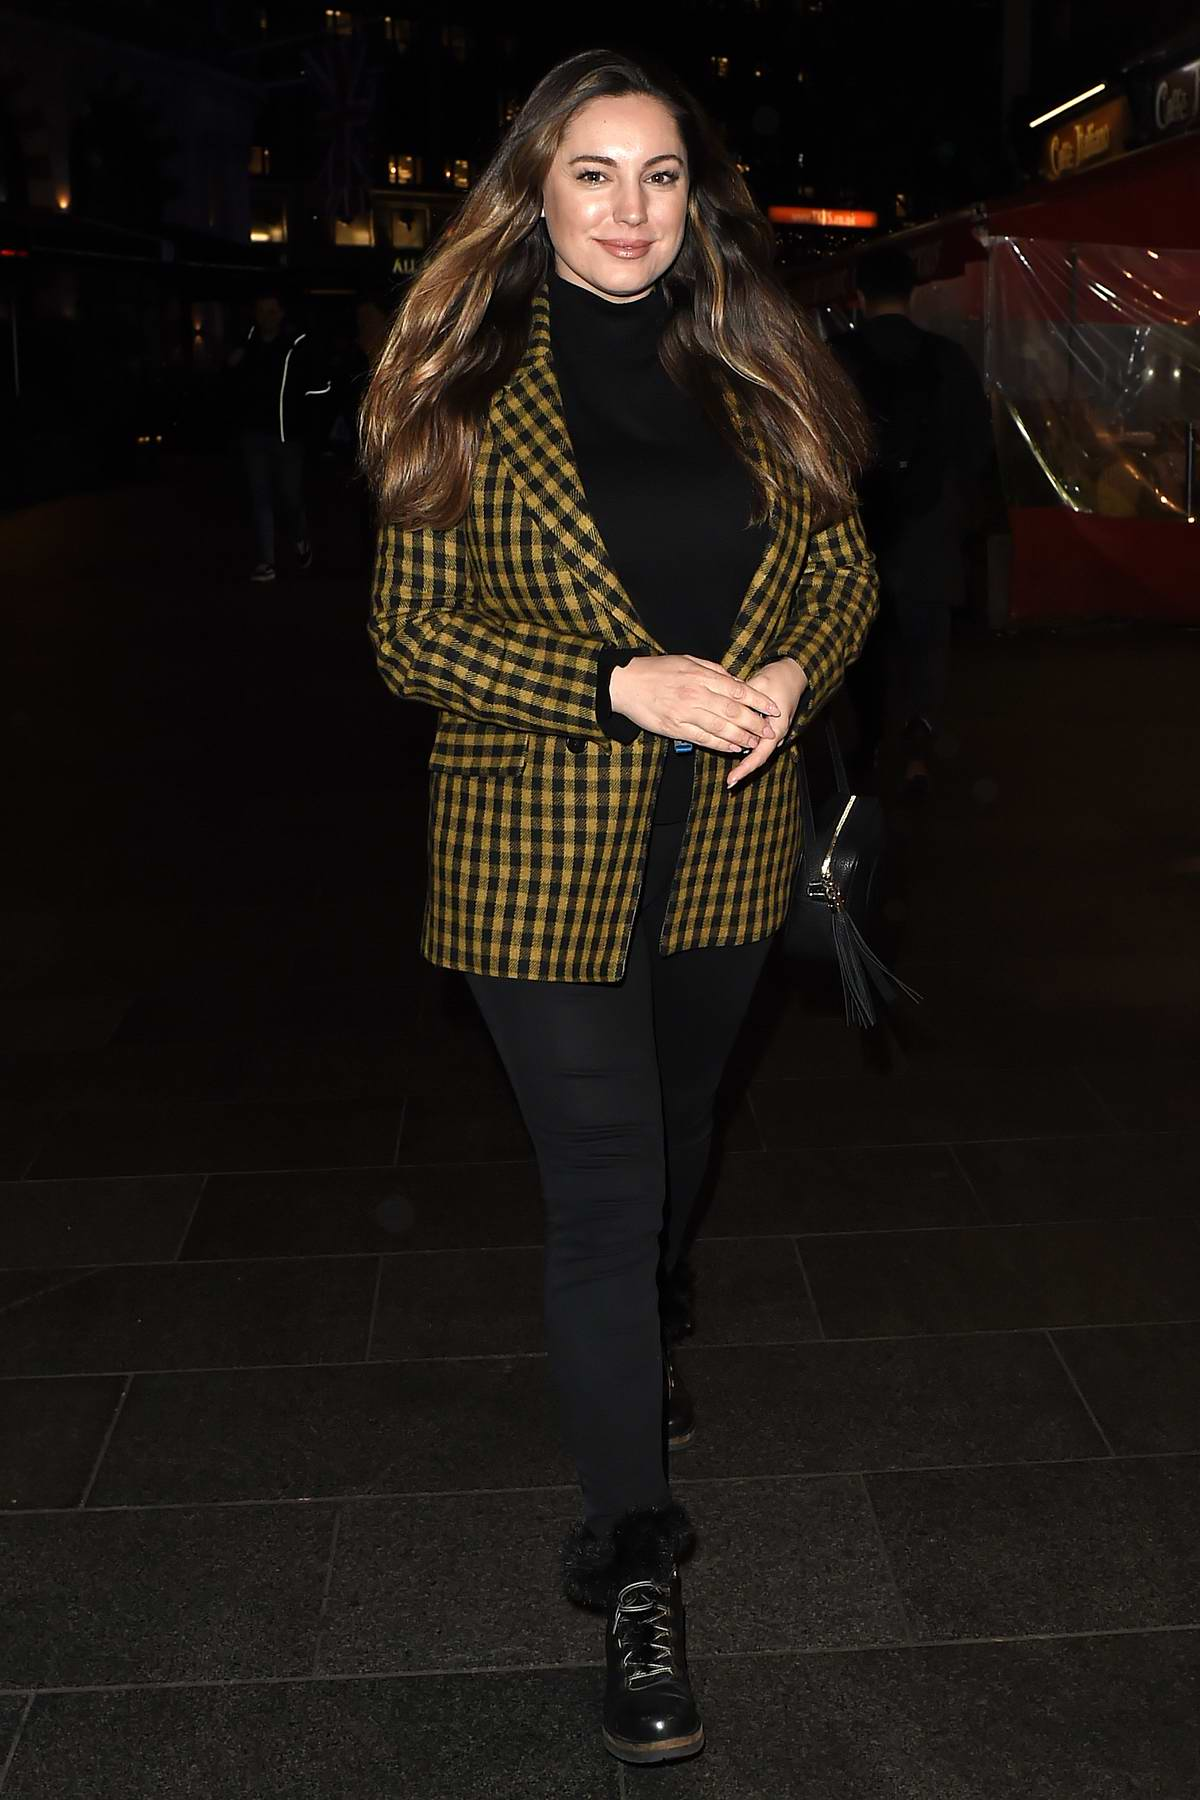 Kelly Brook looks lovely in a checkered coat as she leaves Global Radio Studios in London, UK